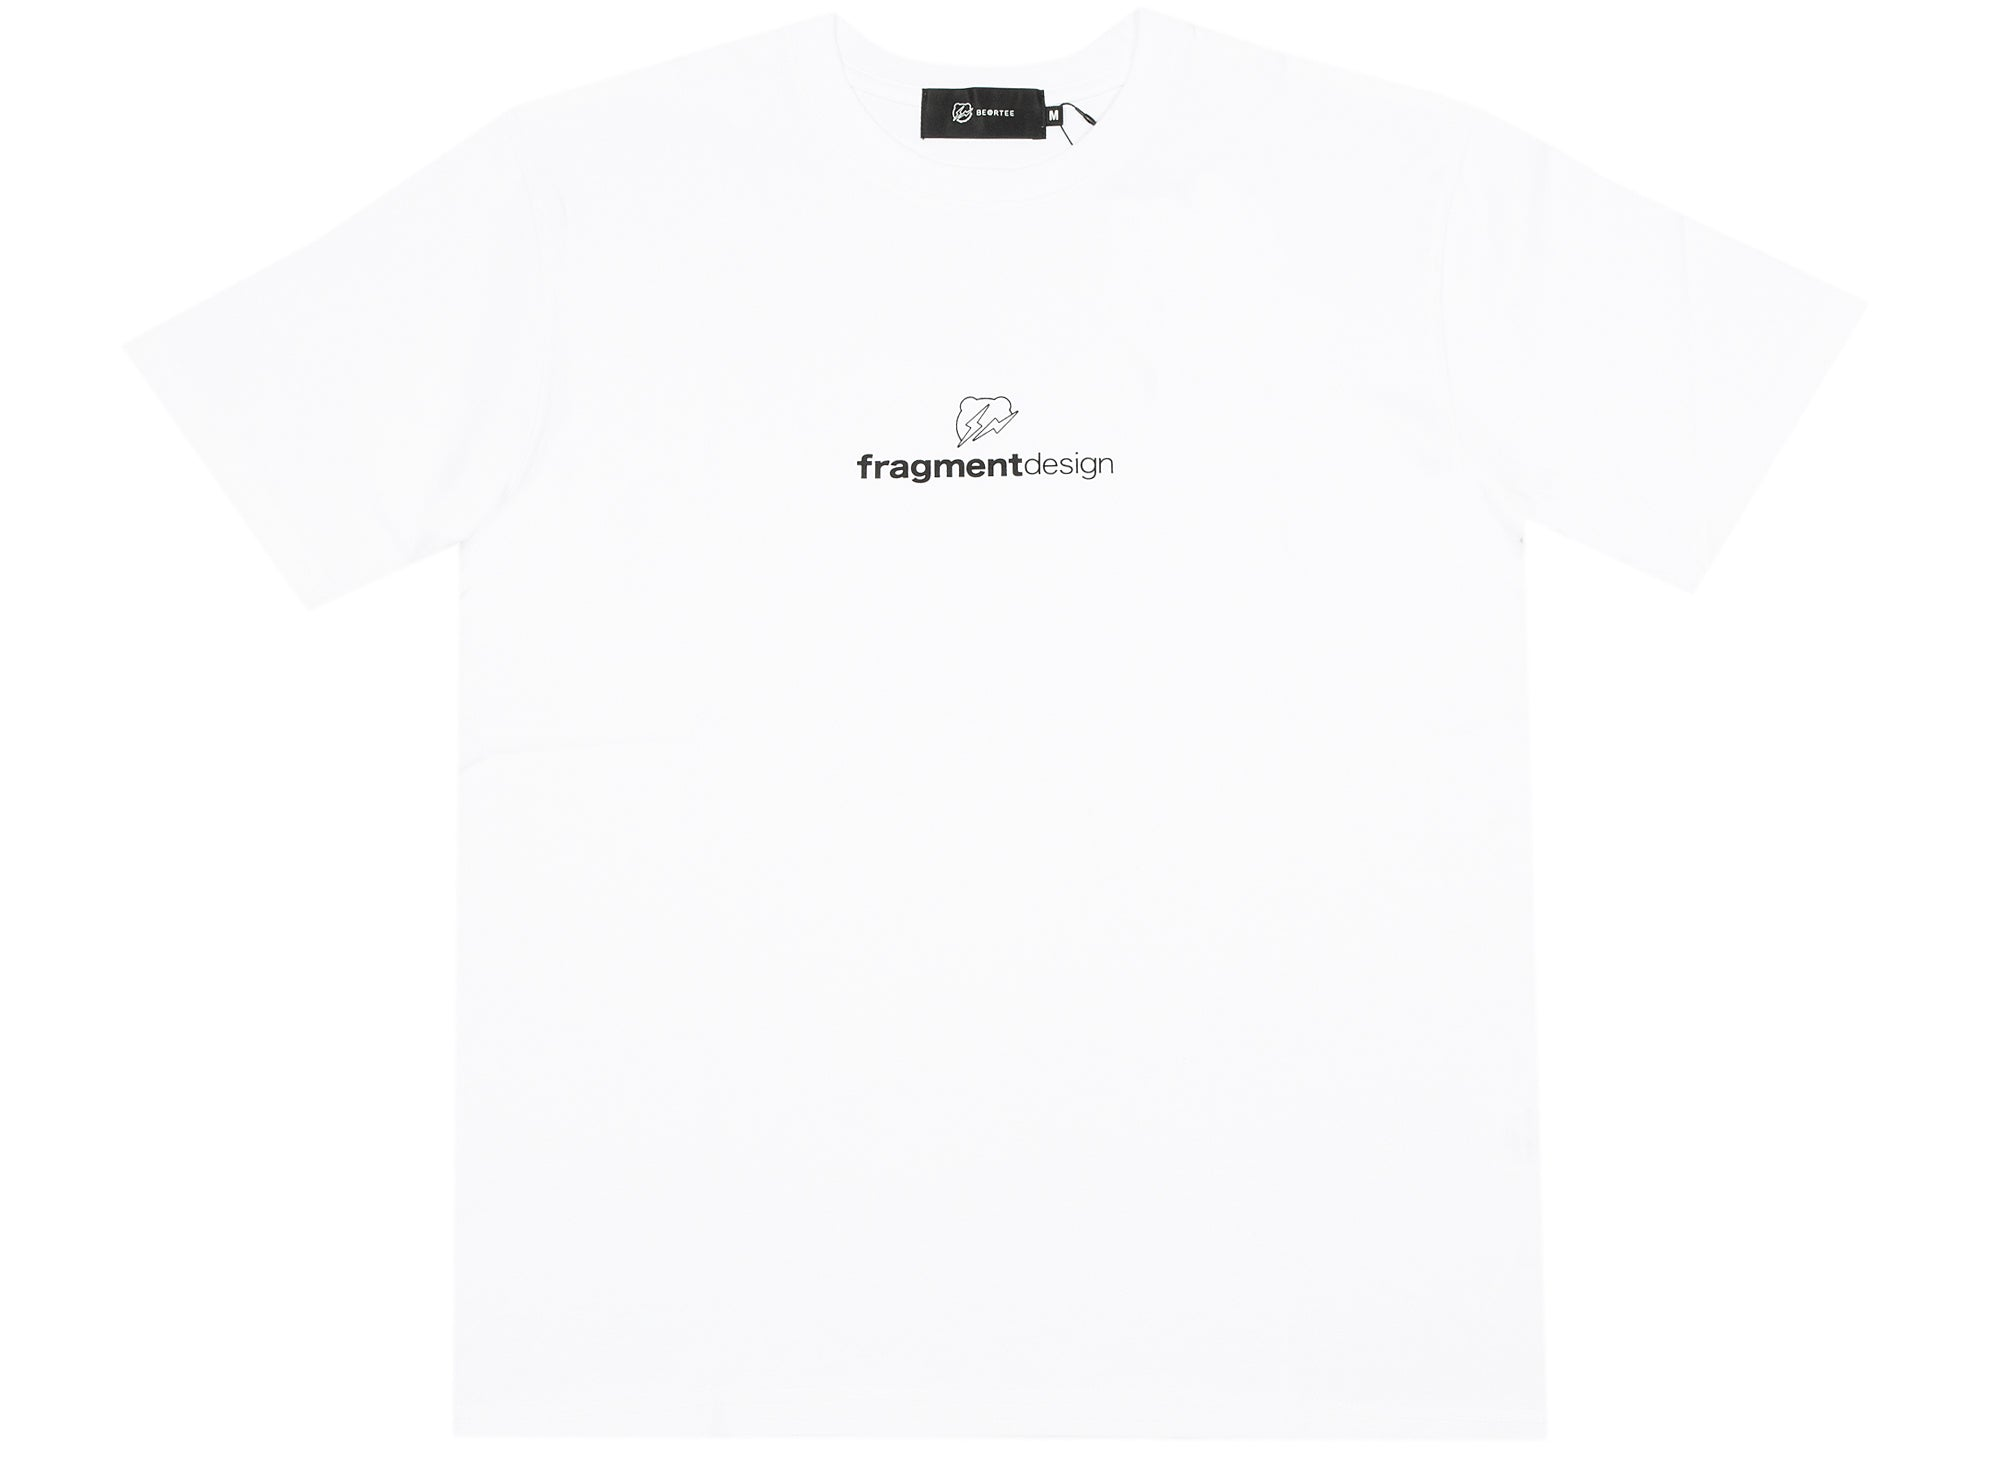 Medicom Toy Be@rtree x fragmentdesign Logo Tee in White xld